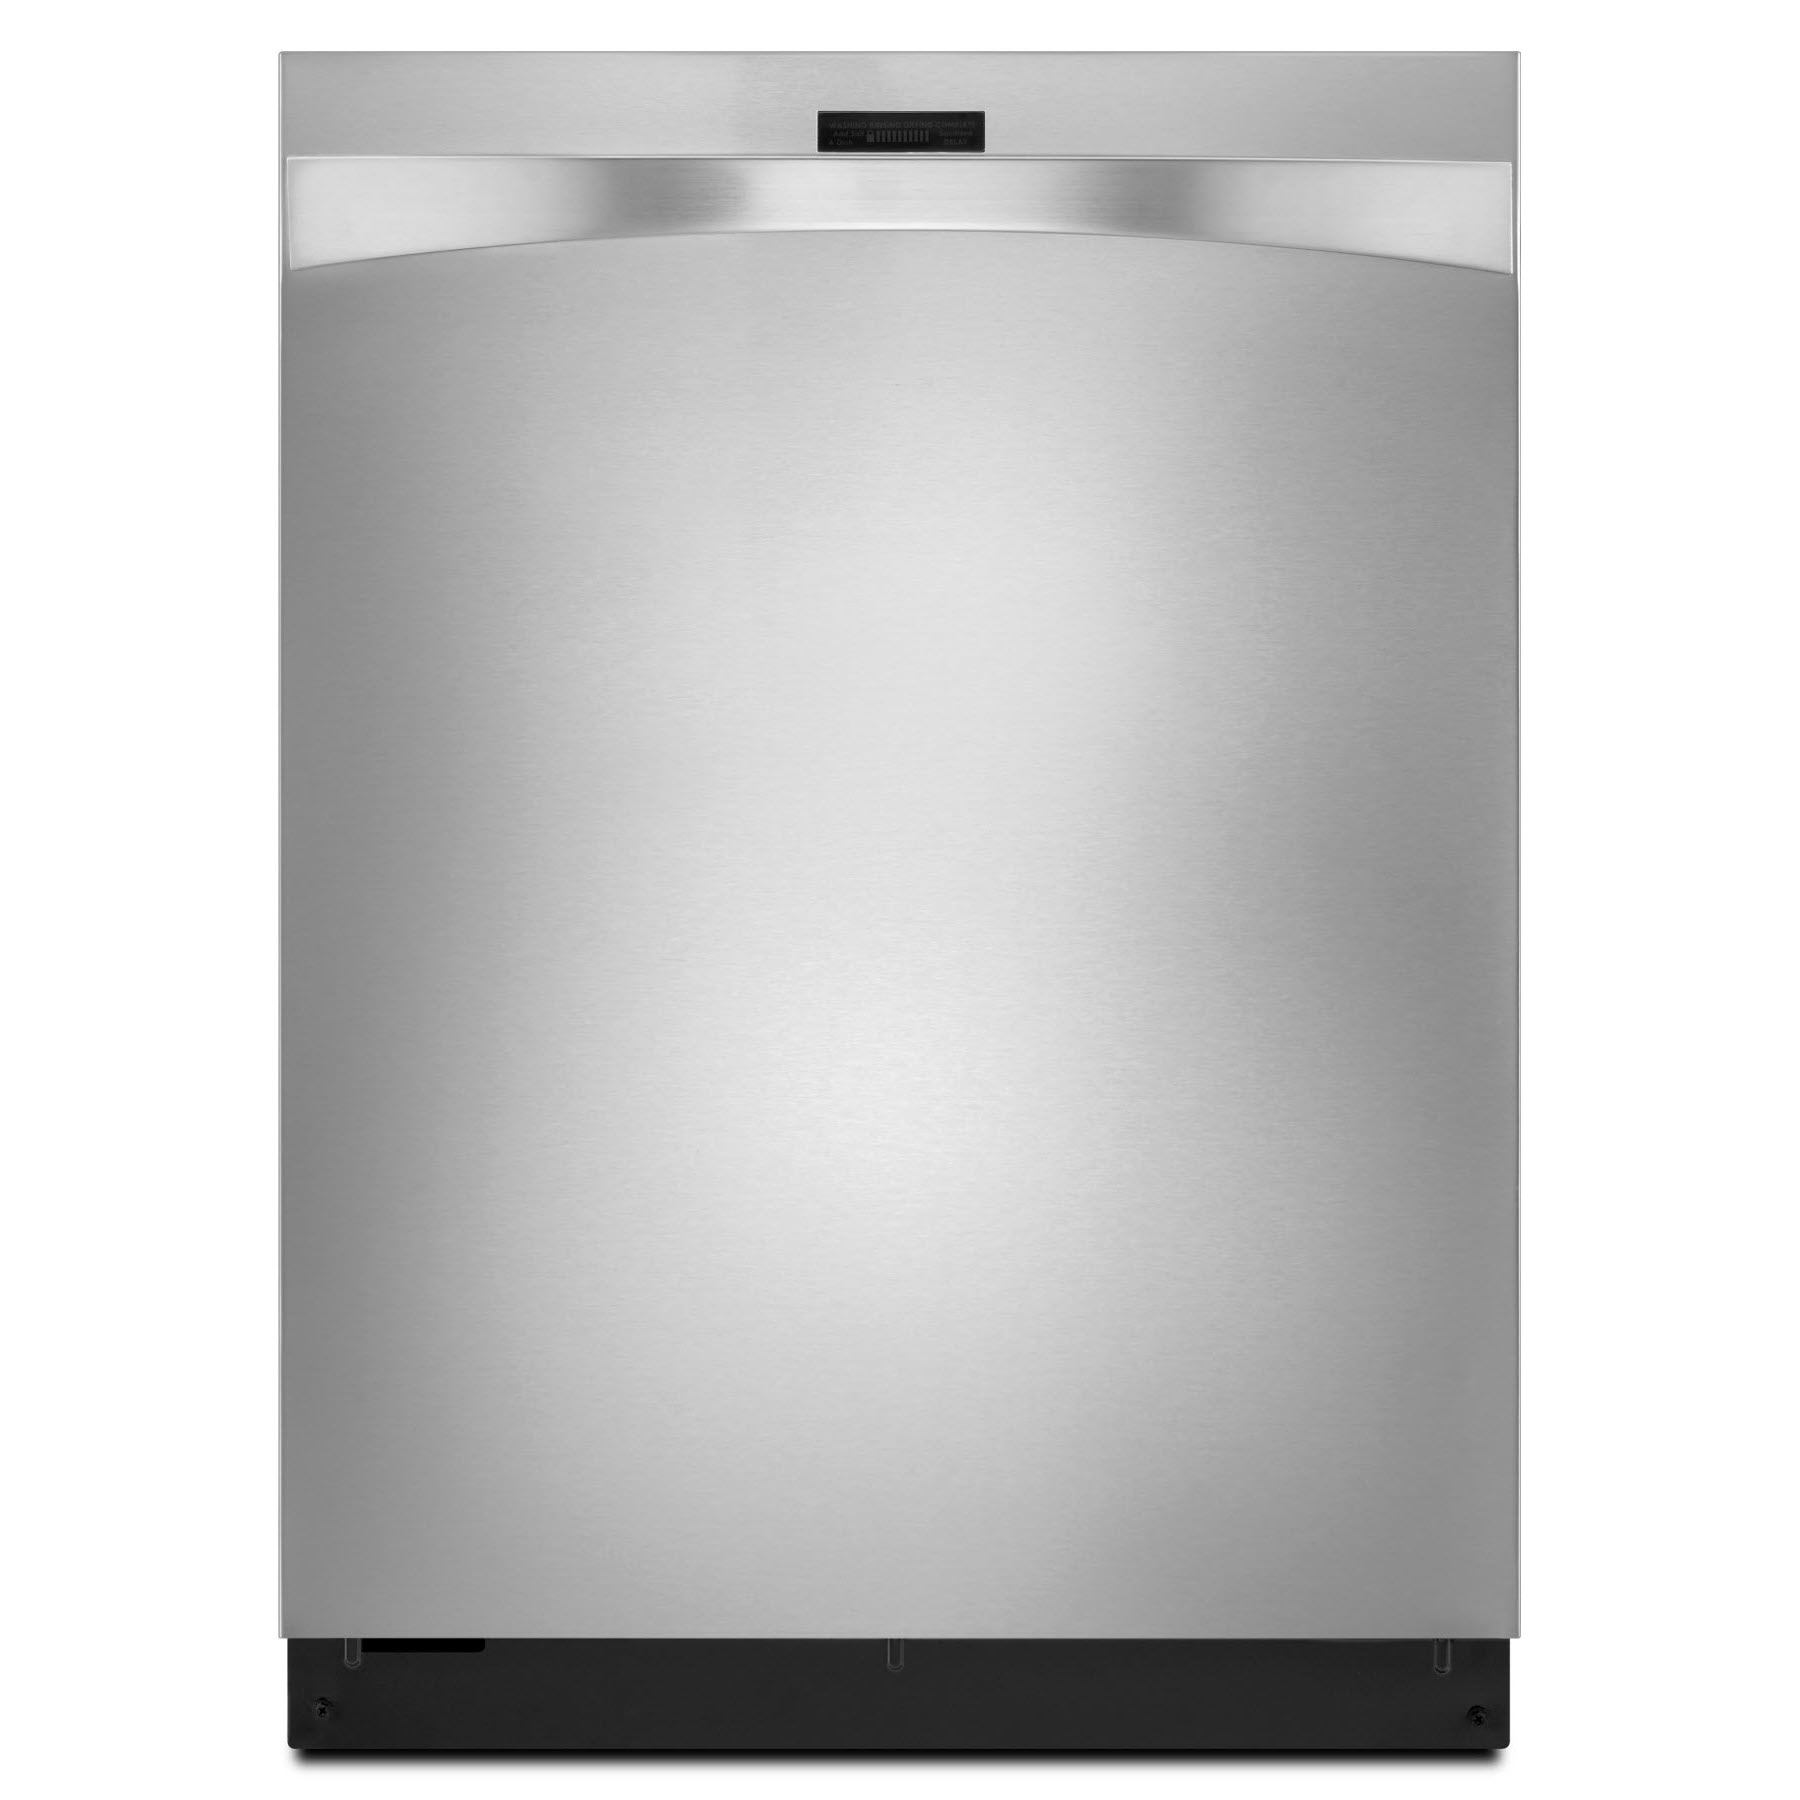 New Kenmore Elite 24 039 039 Built in Dishwasher Stainless Steel 13963 ...